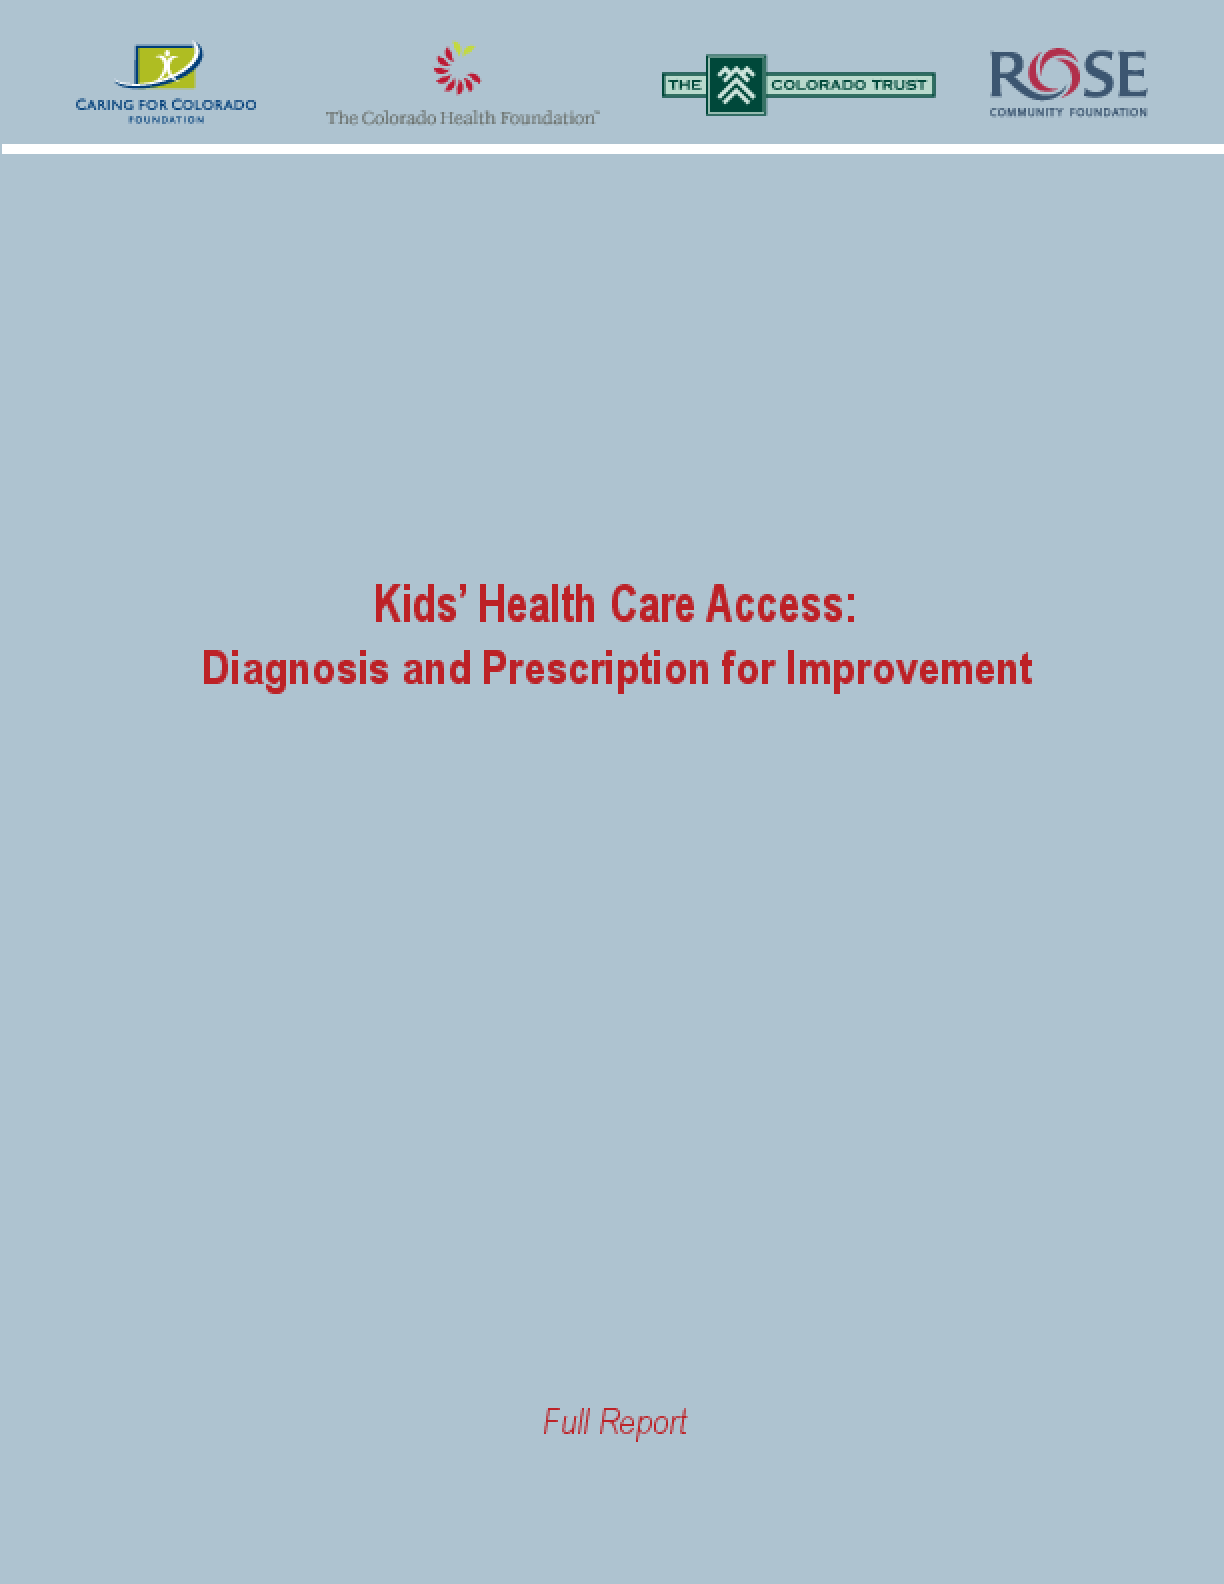 Kids' Health Care Access: Diagnosis and Prescription for Improvement